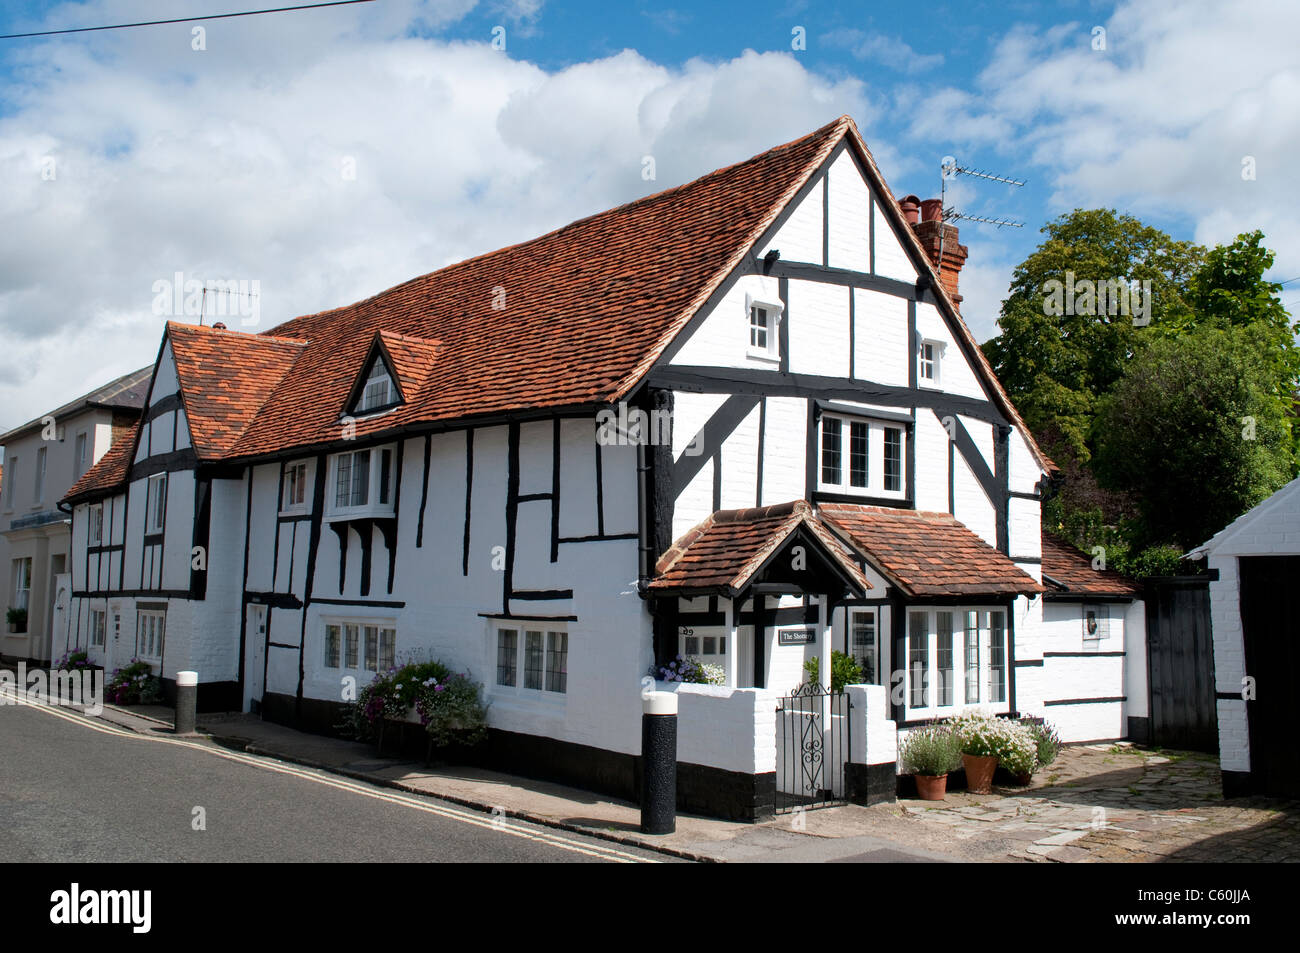 Tudor style cottages, Bray, Berkshire, England, UK - Stock Image